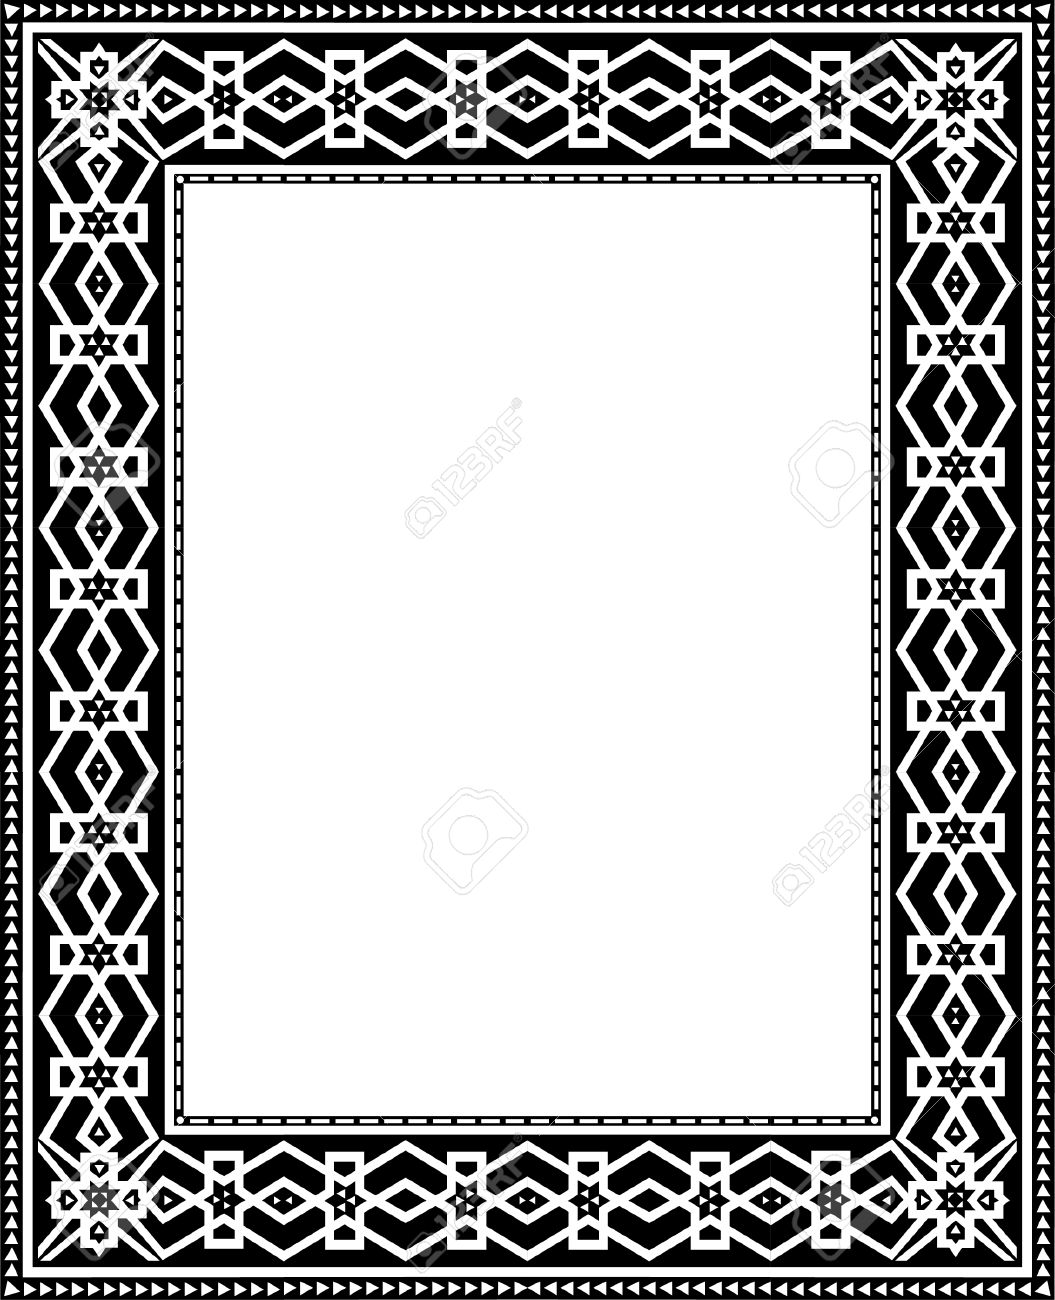 Oriental Damask Border Frame Royalty Free Cliparts, Vectors, And ...